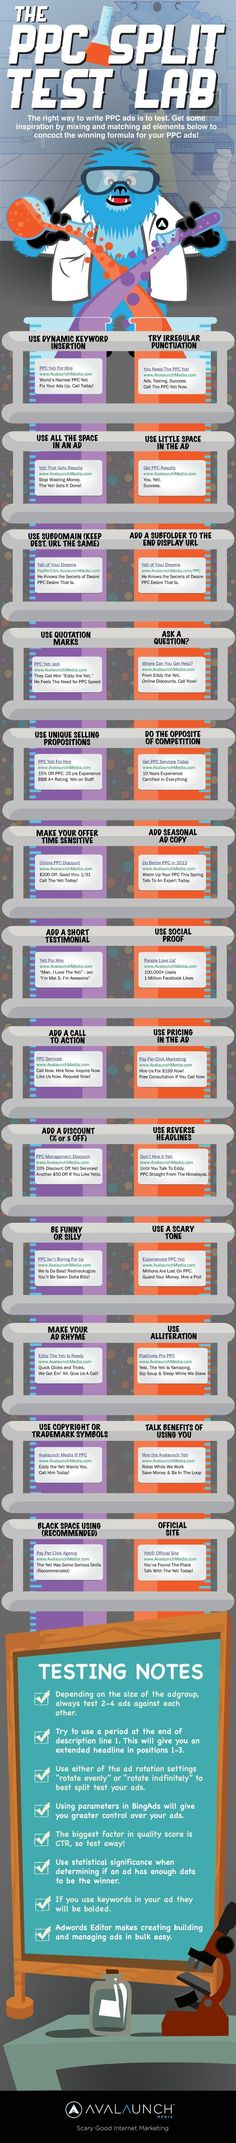 26 Ideas for Split Testing Your #Search Ads [infographic] | Search Engine Land post | #seo #sem